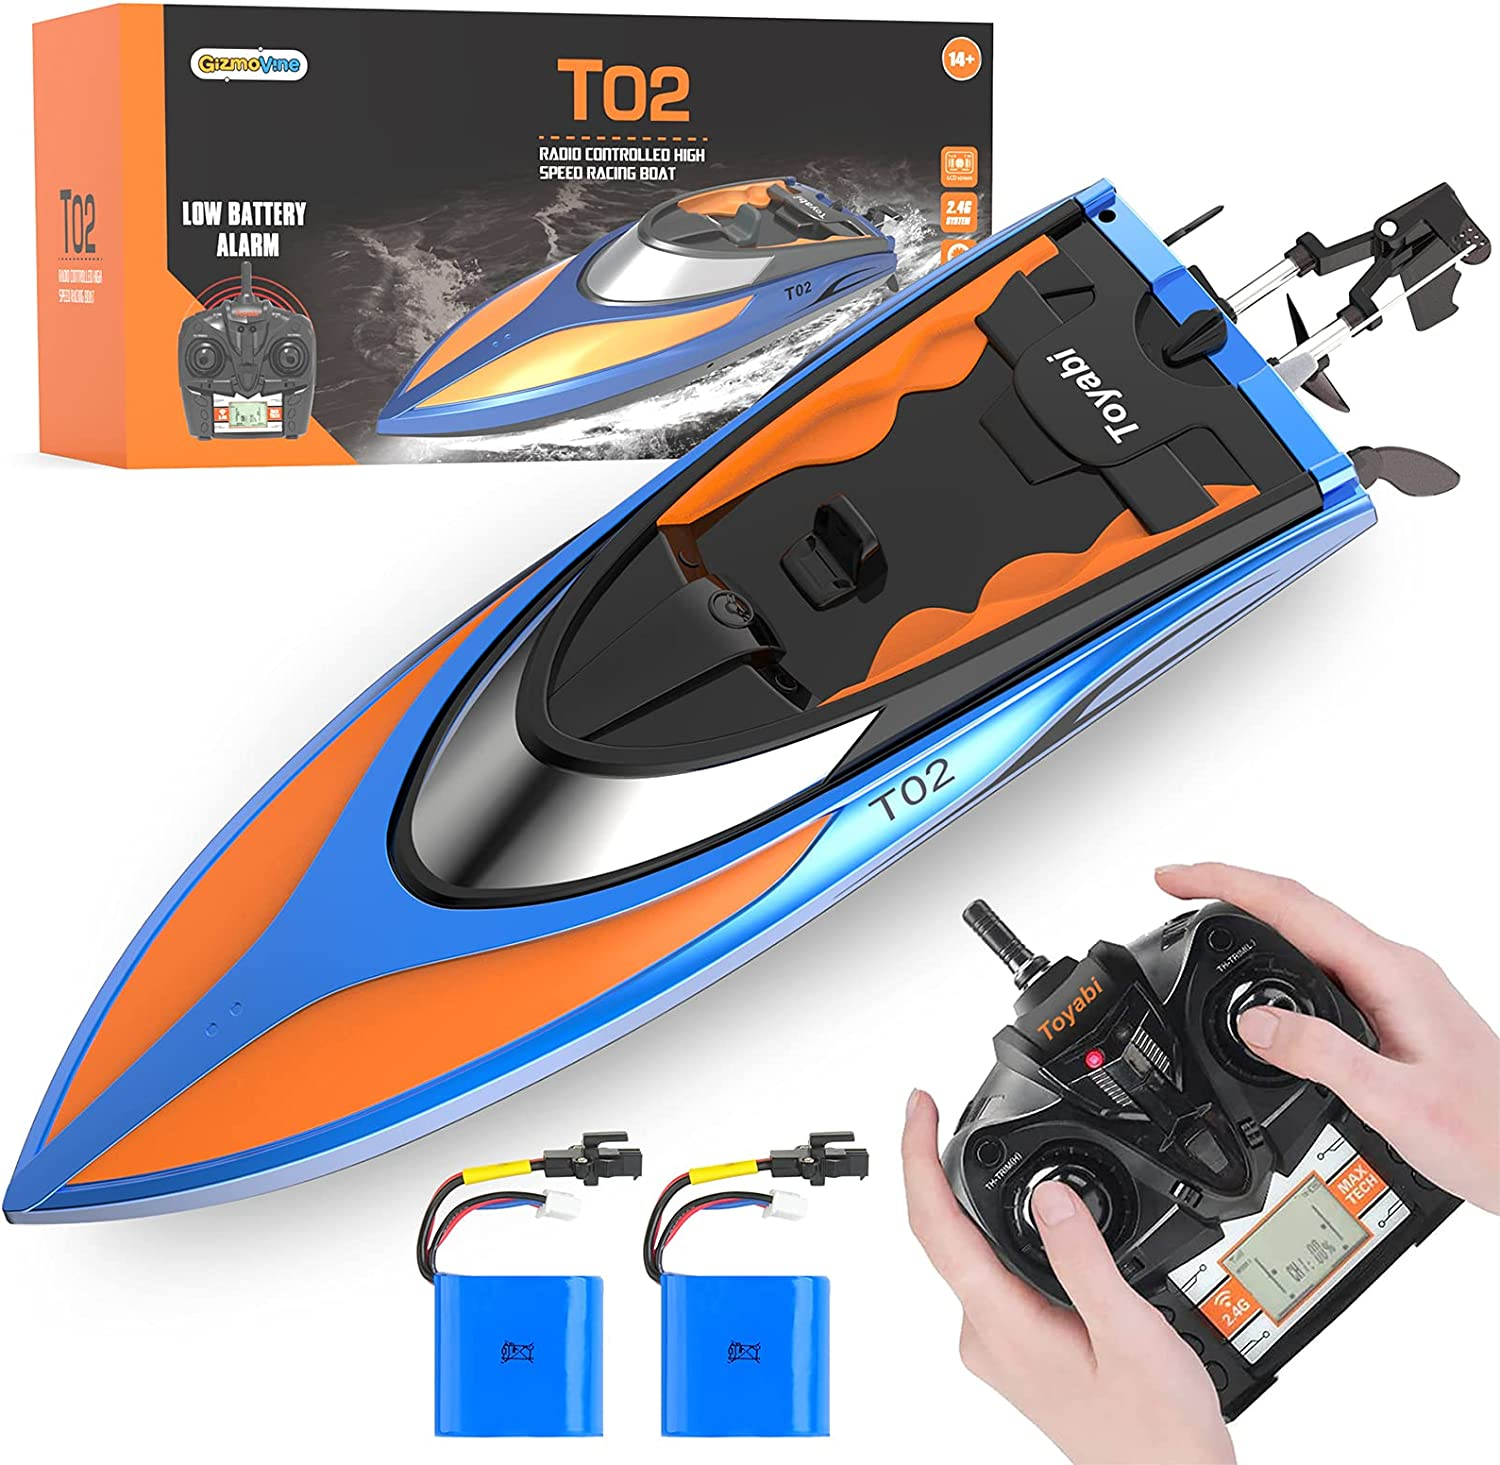 GizmoVine RC Boat Super Special SALE held High Speed 20MPH+ Fresno Mall Boats Control for P Remote